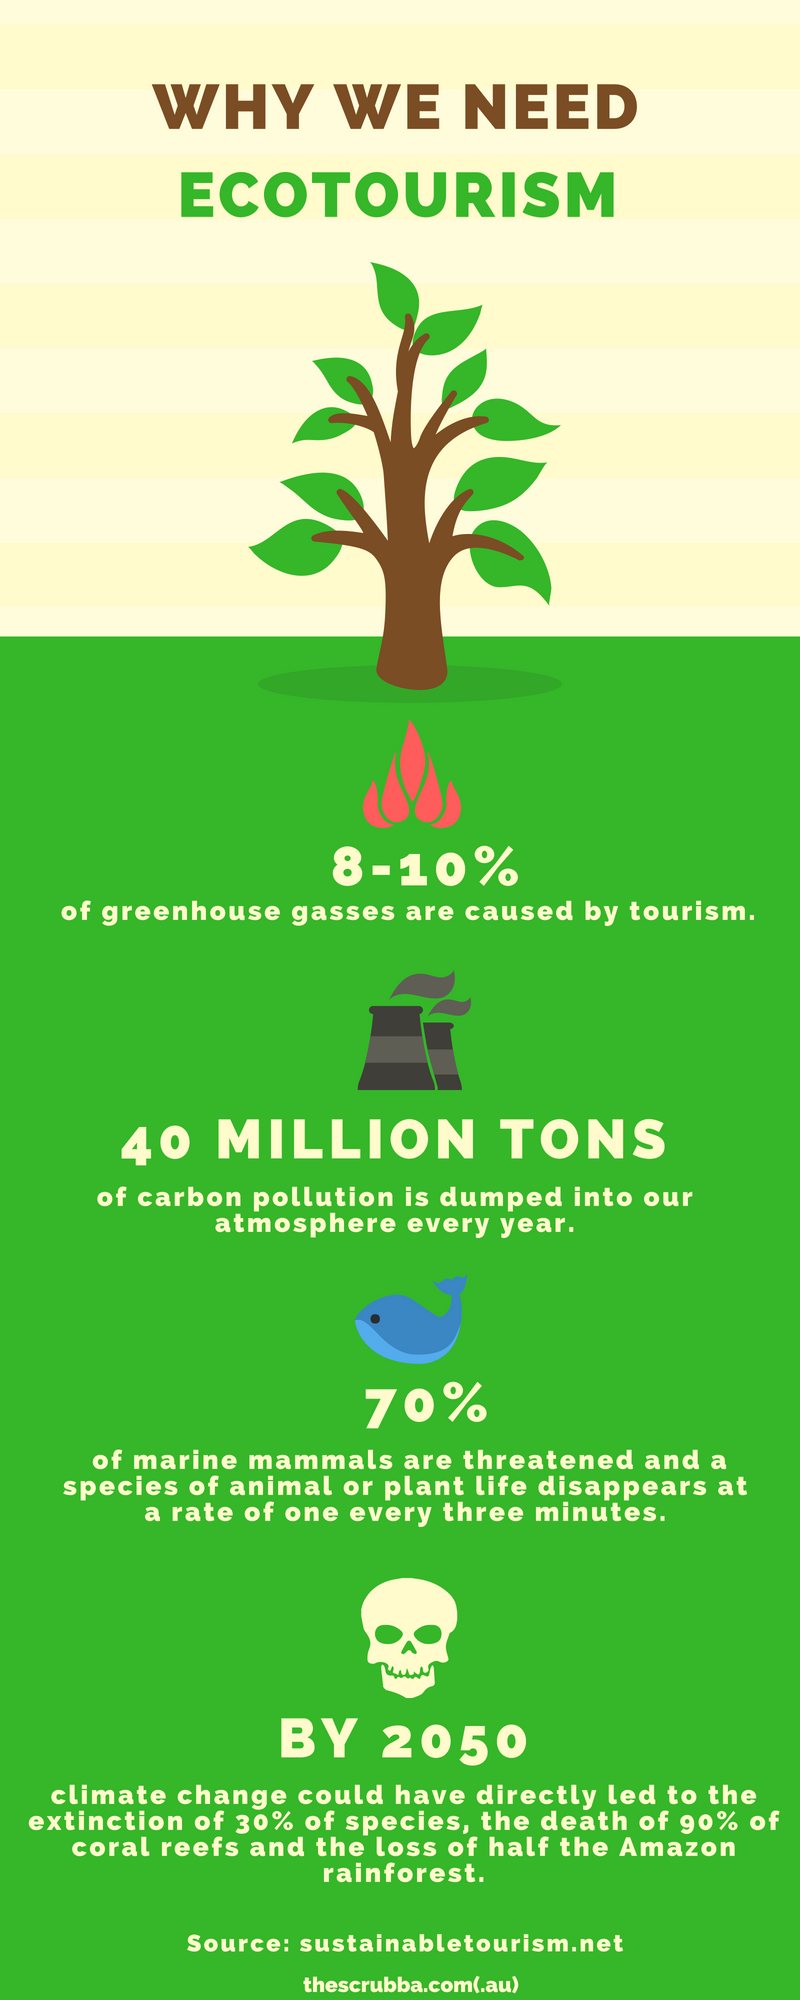 Why we need ecotourism infographic